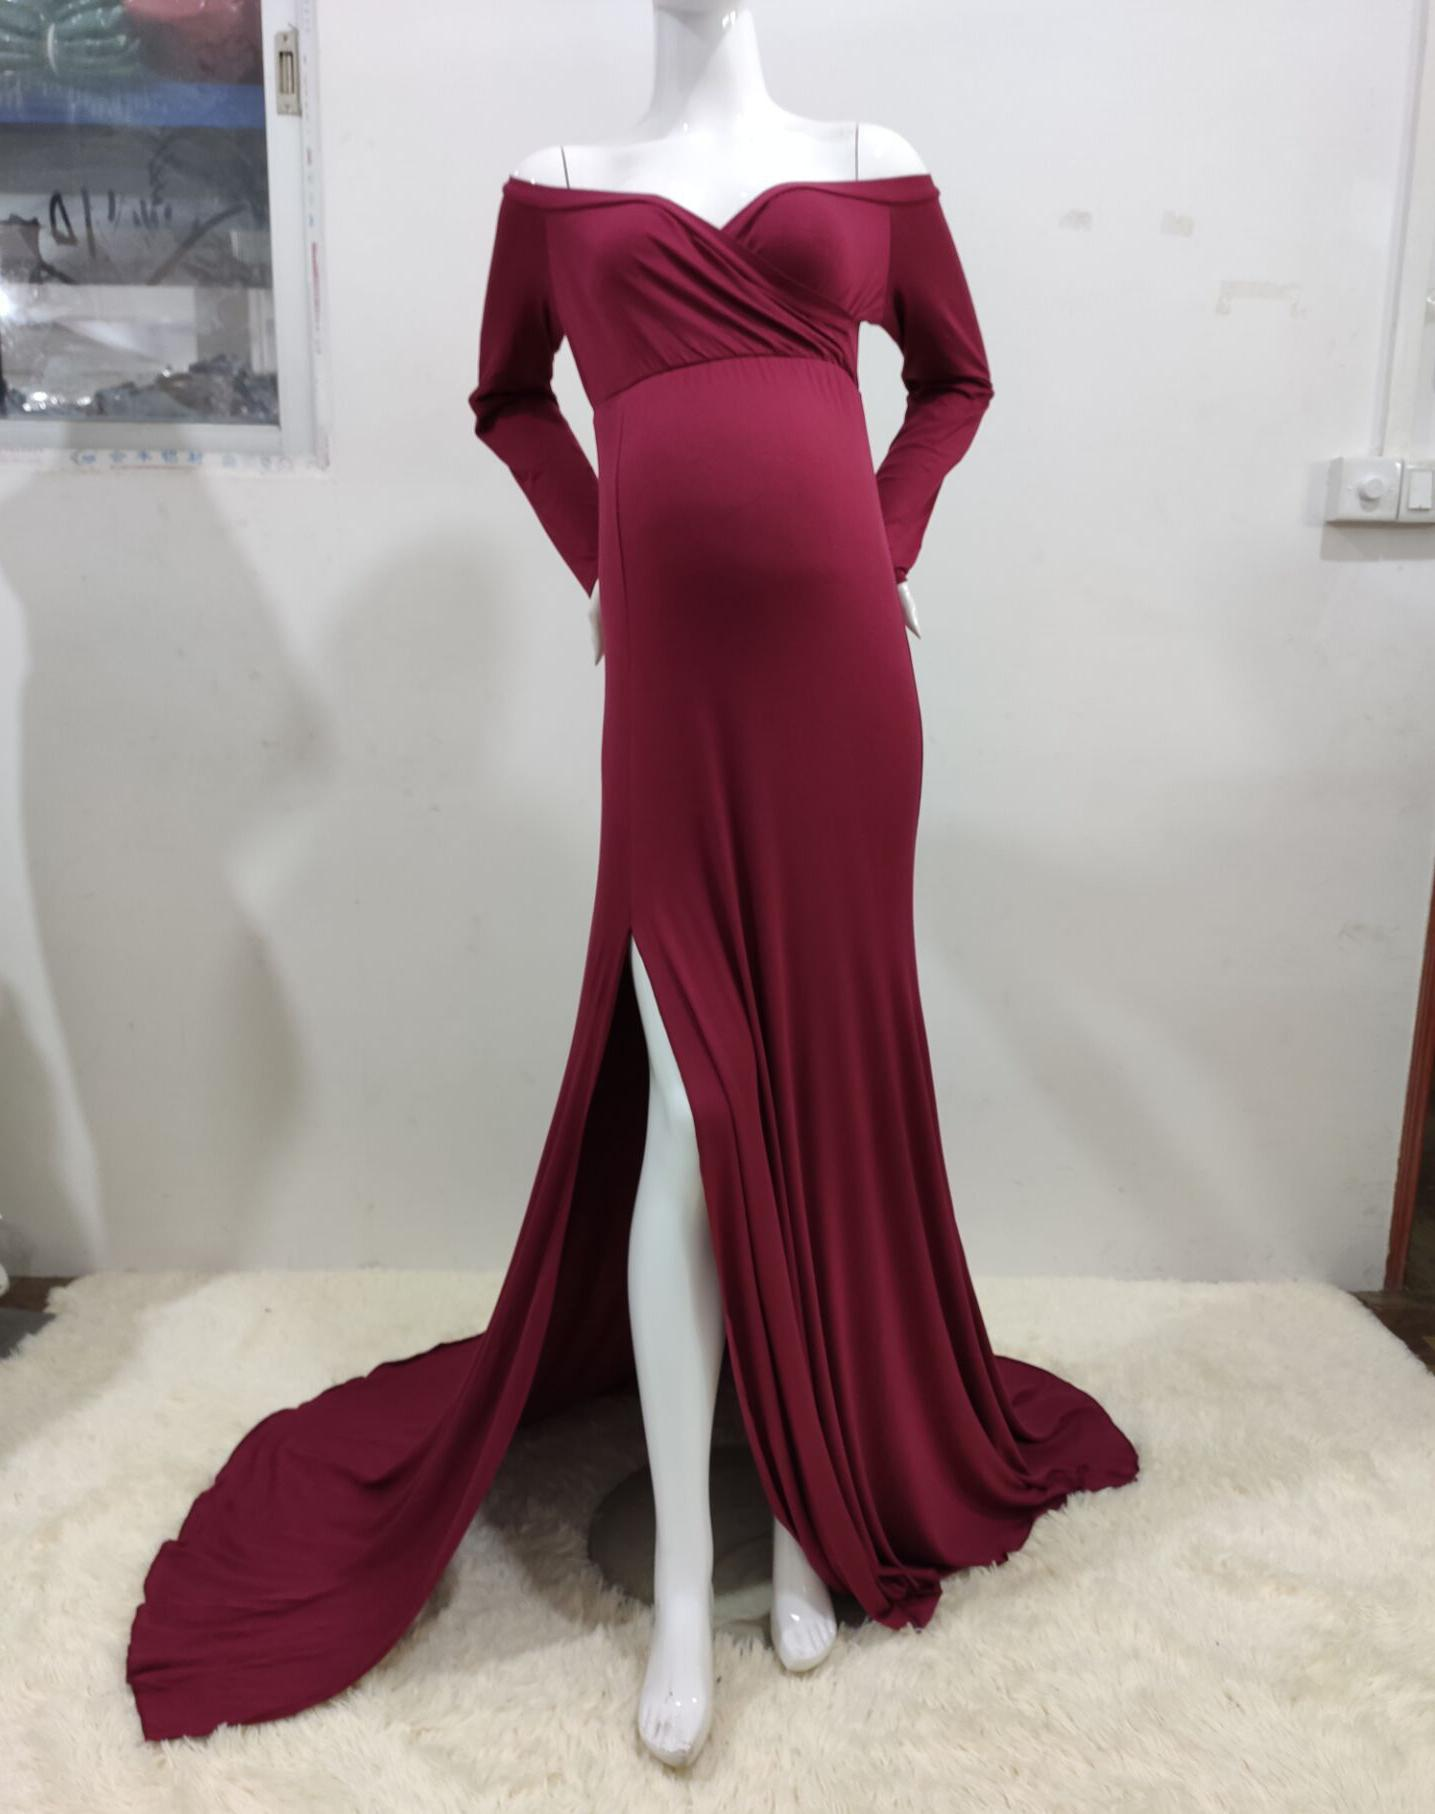 Pregnant Dress New Maternity Photography Props For Shooting Photo Pregnancy Clothes Cotton+Chiffon Off Shoulder Half 1709653 enlarge